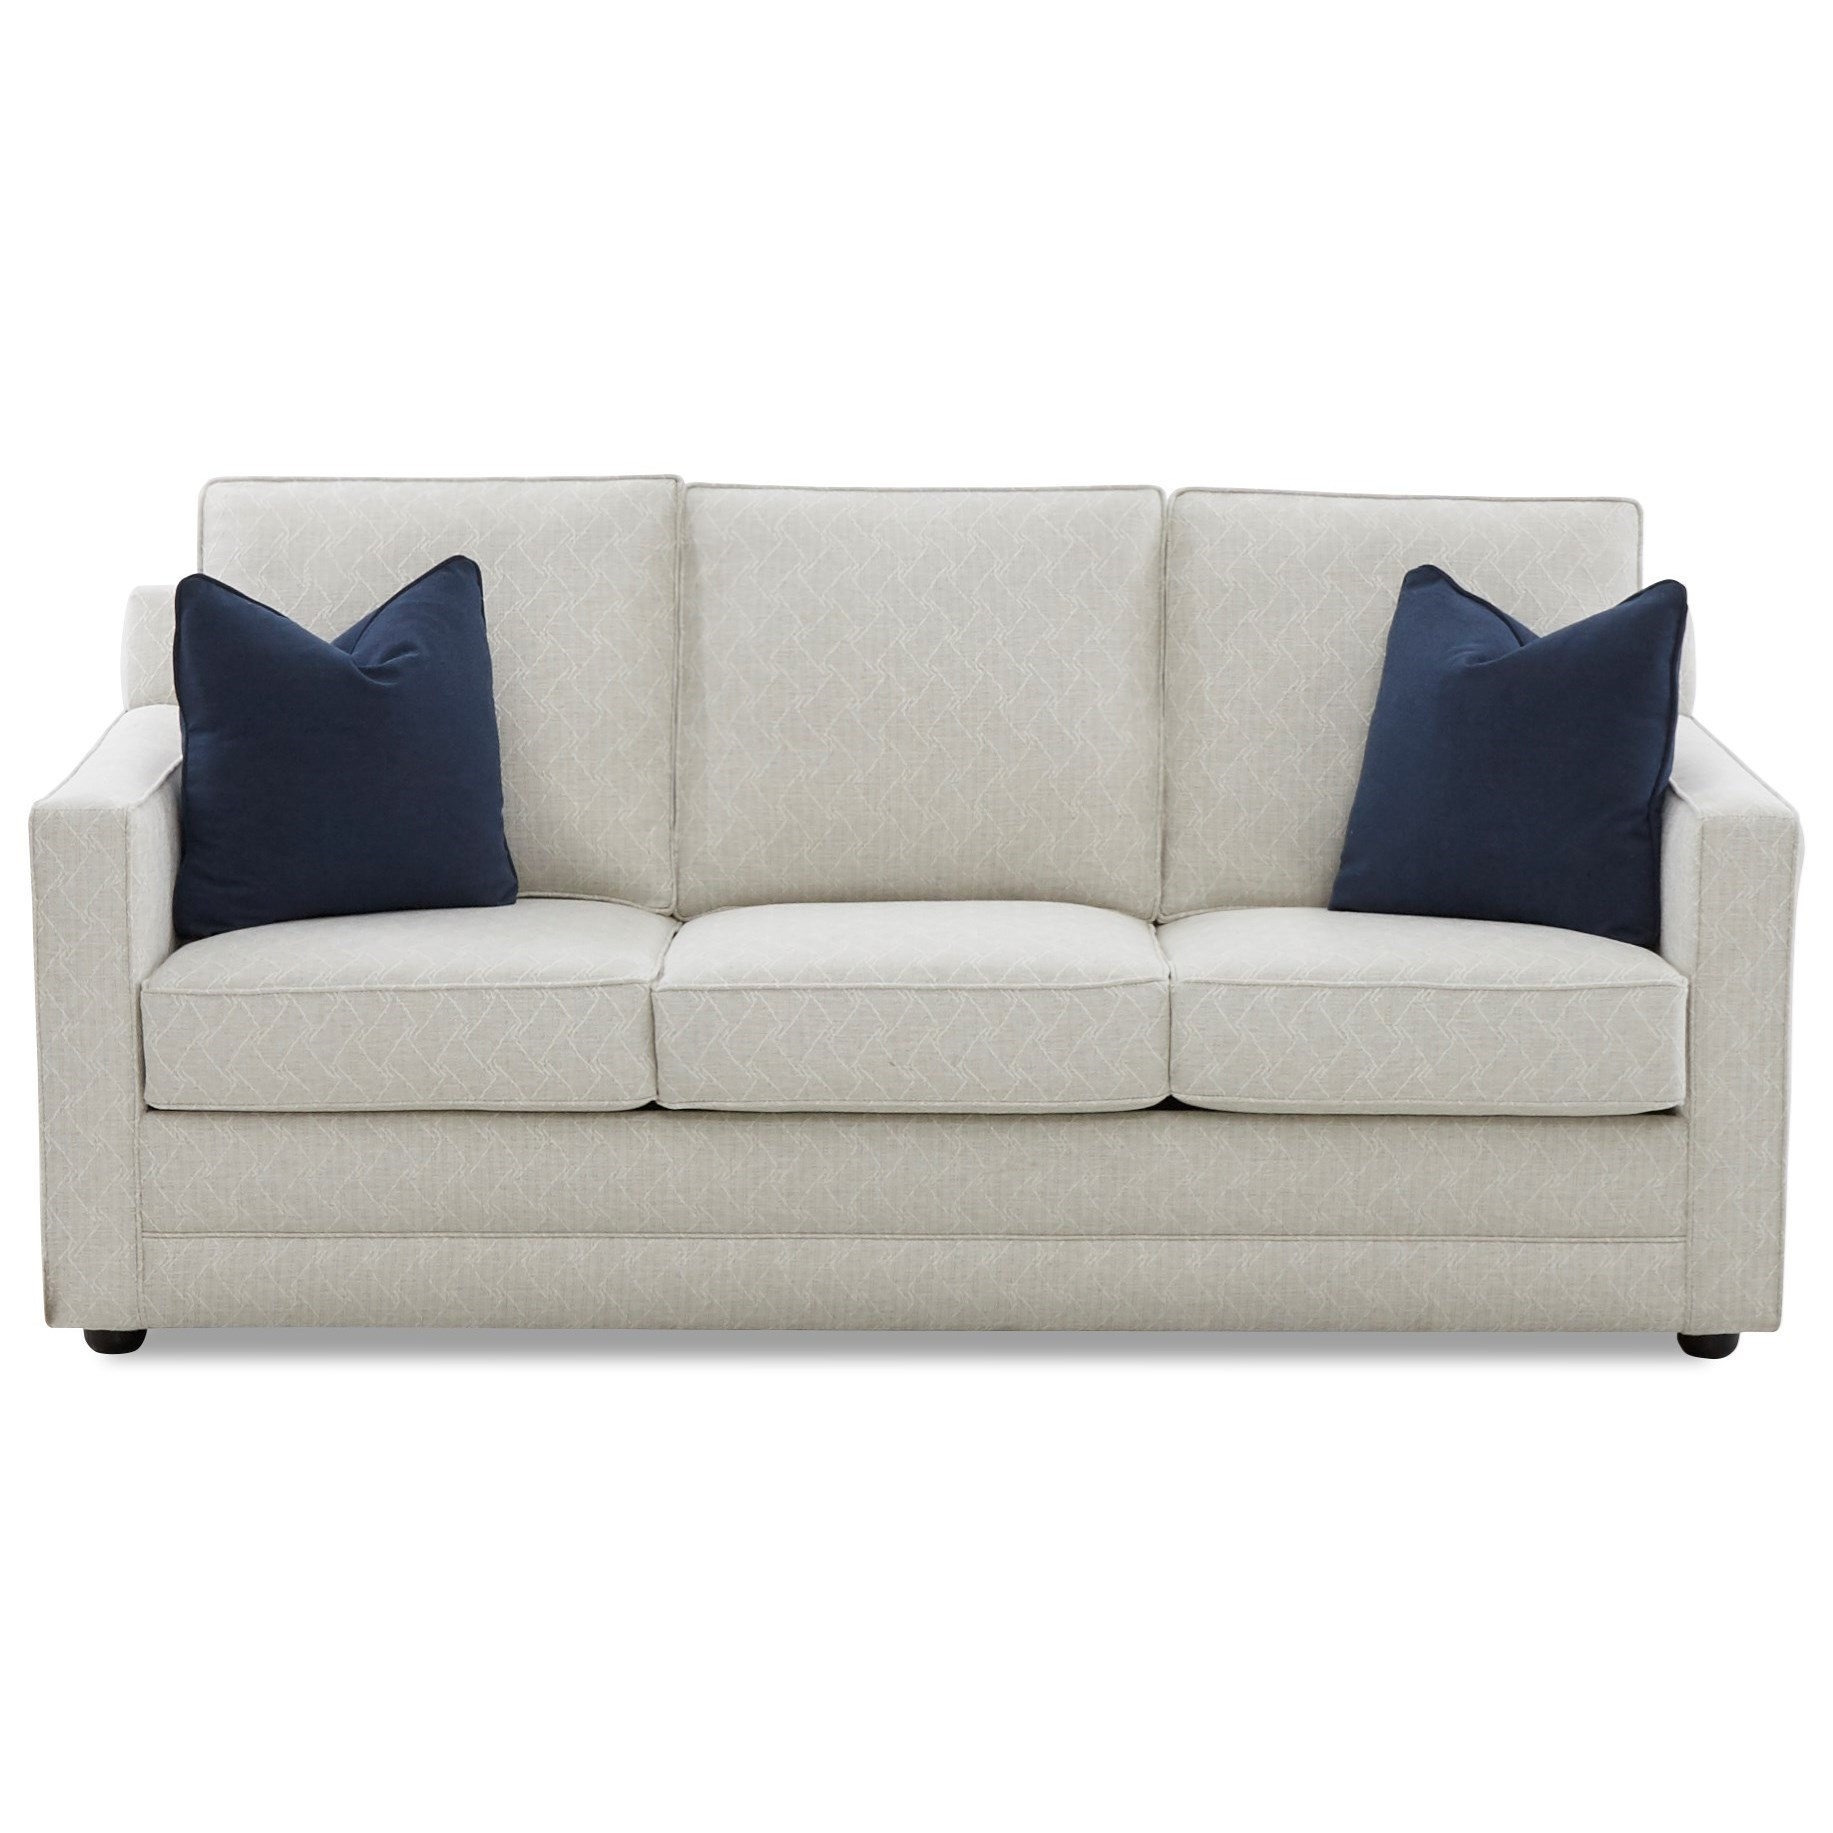 Contemporary 80 Inch Sleeper Sofa with Dreamquest Mattress